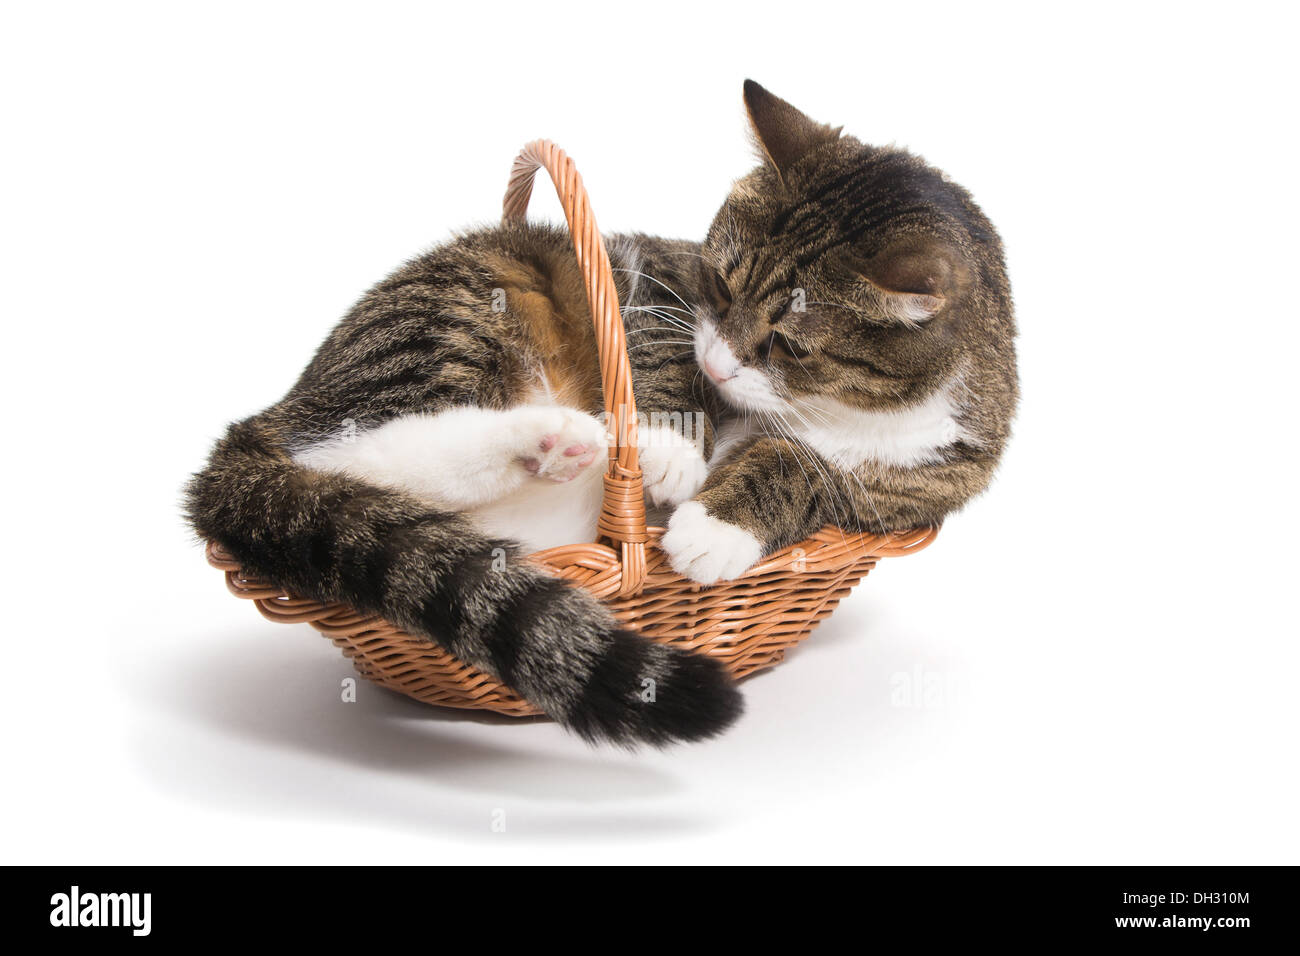 Cat grew up and he needed a big house (basket) - Stock Image